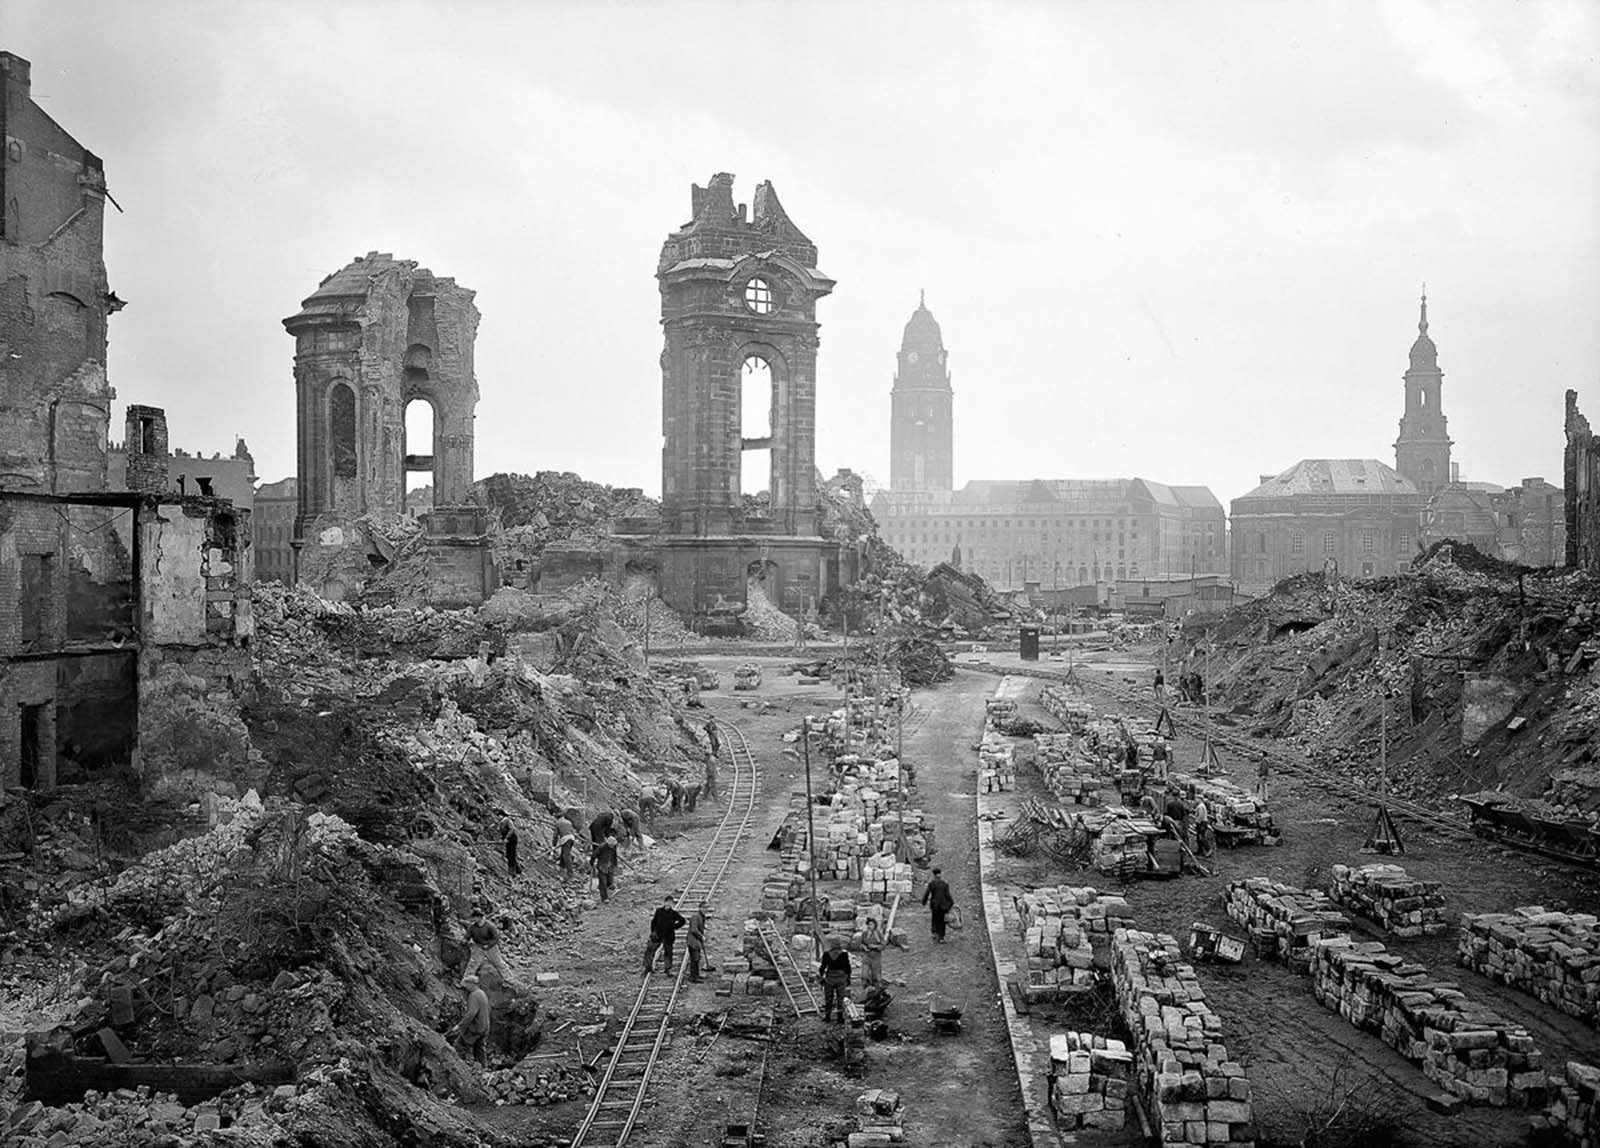 People clear rubble in front of the ruins of the Frauenkirche. 1952.